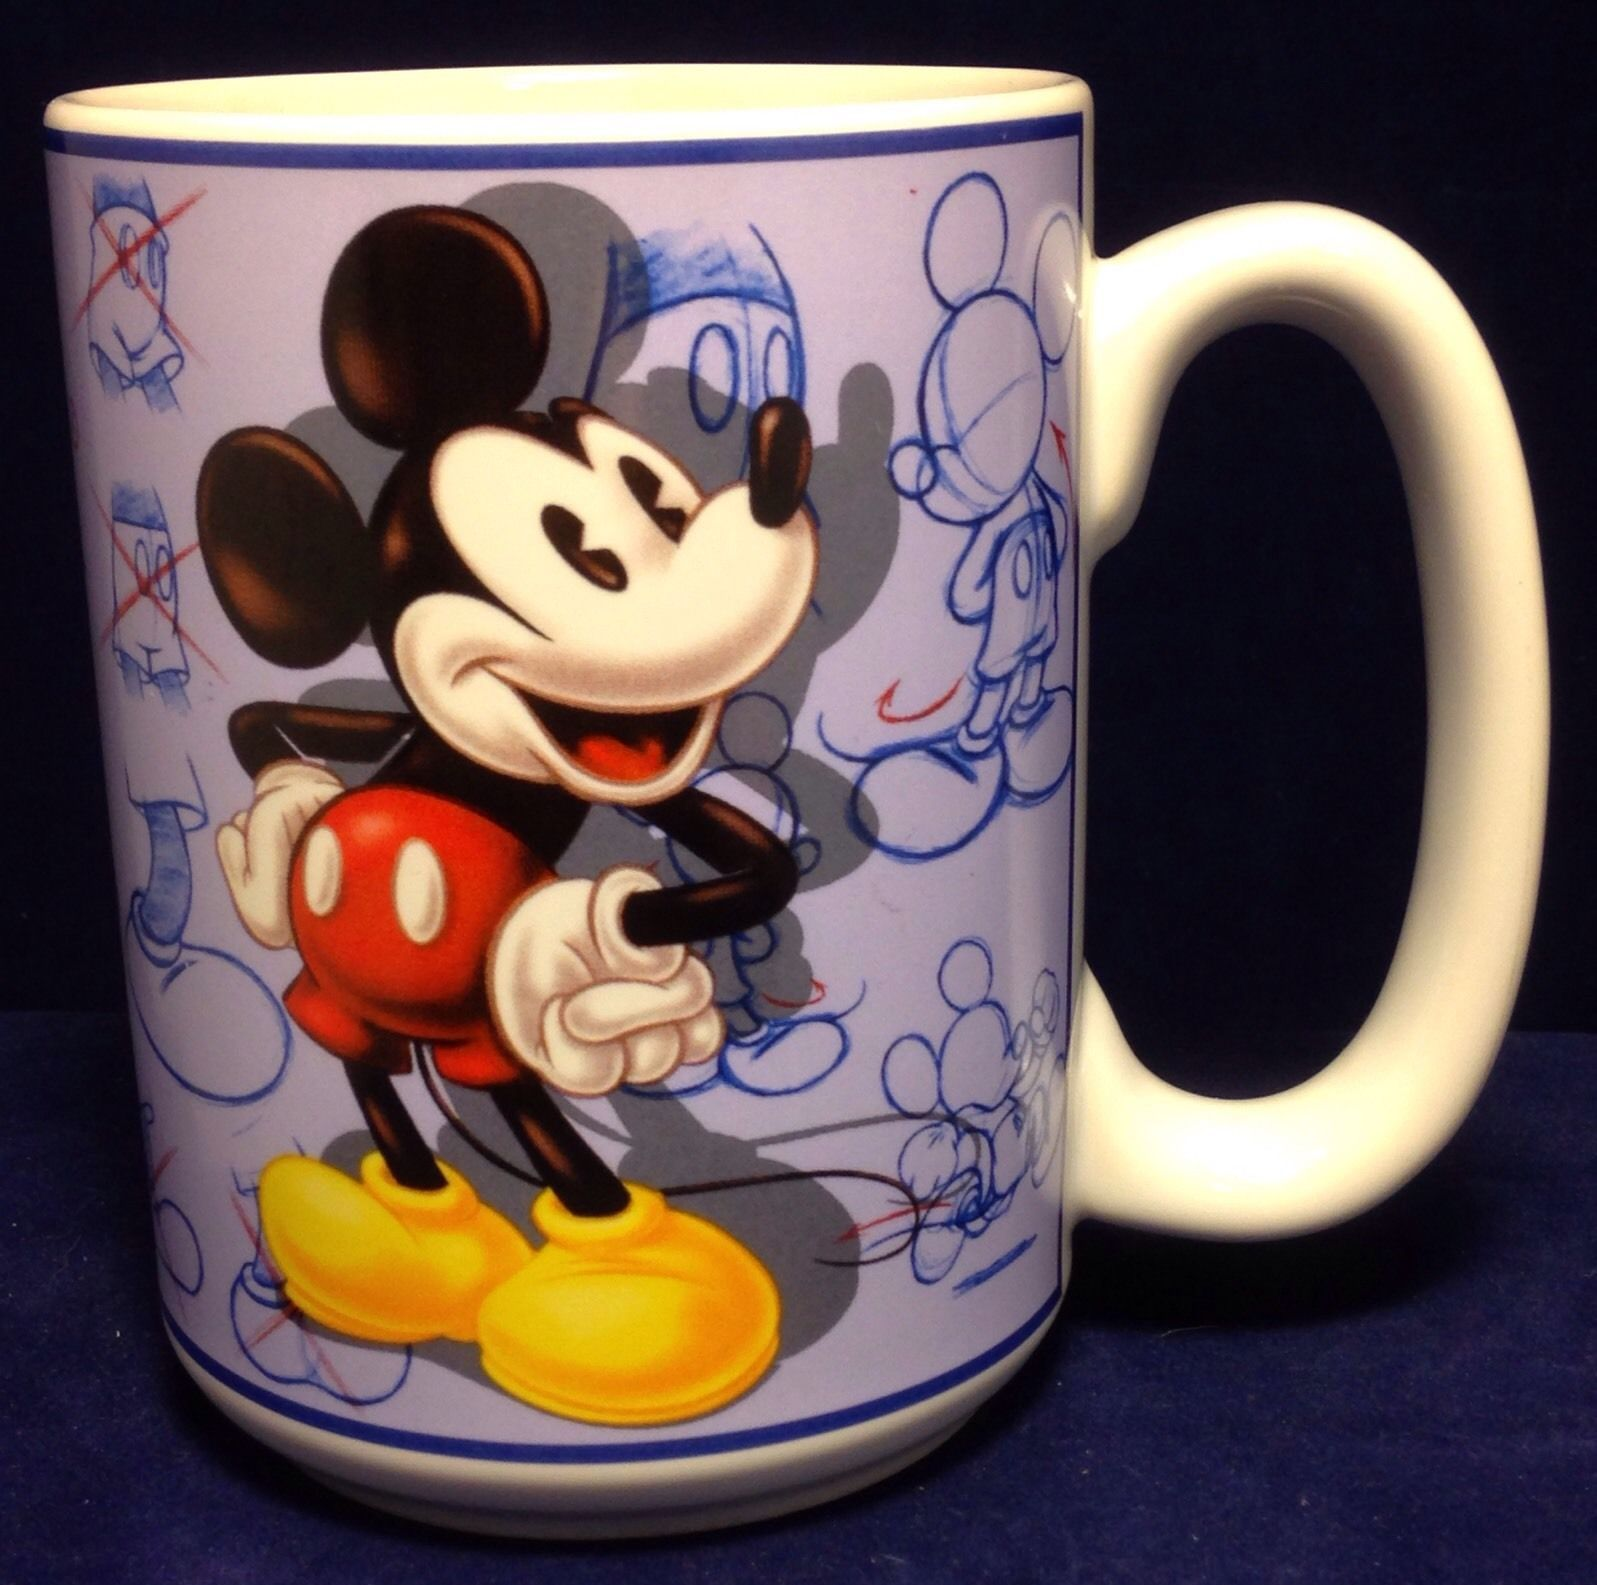 Disney store mickey mouse coffee mug animator sketches art sketch mugs glasses - Disney store mickey mouse ...